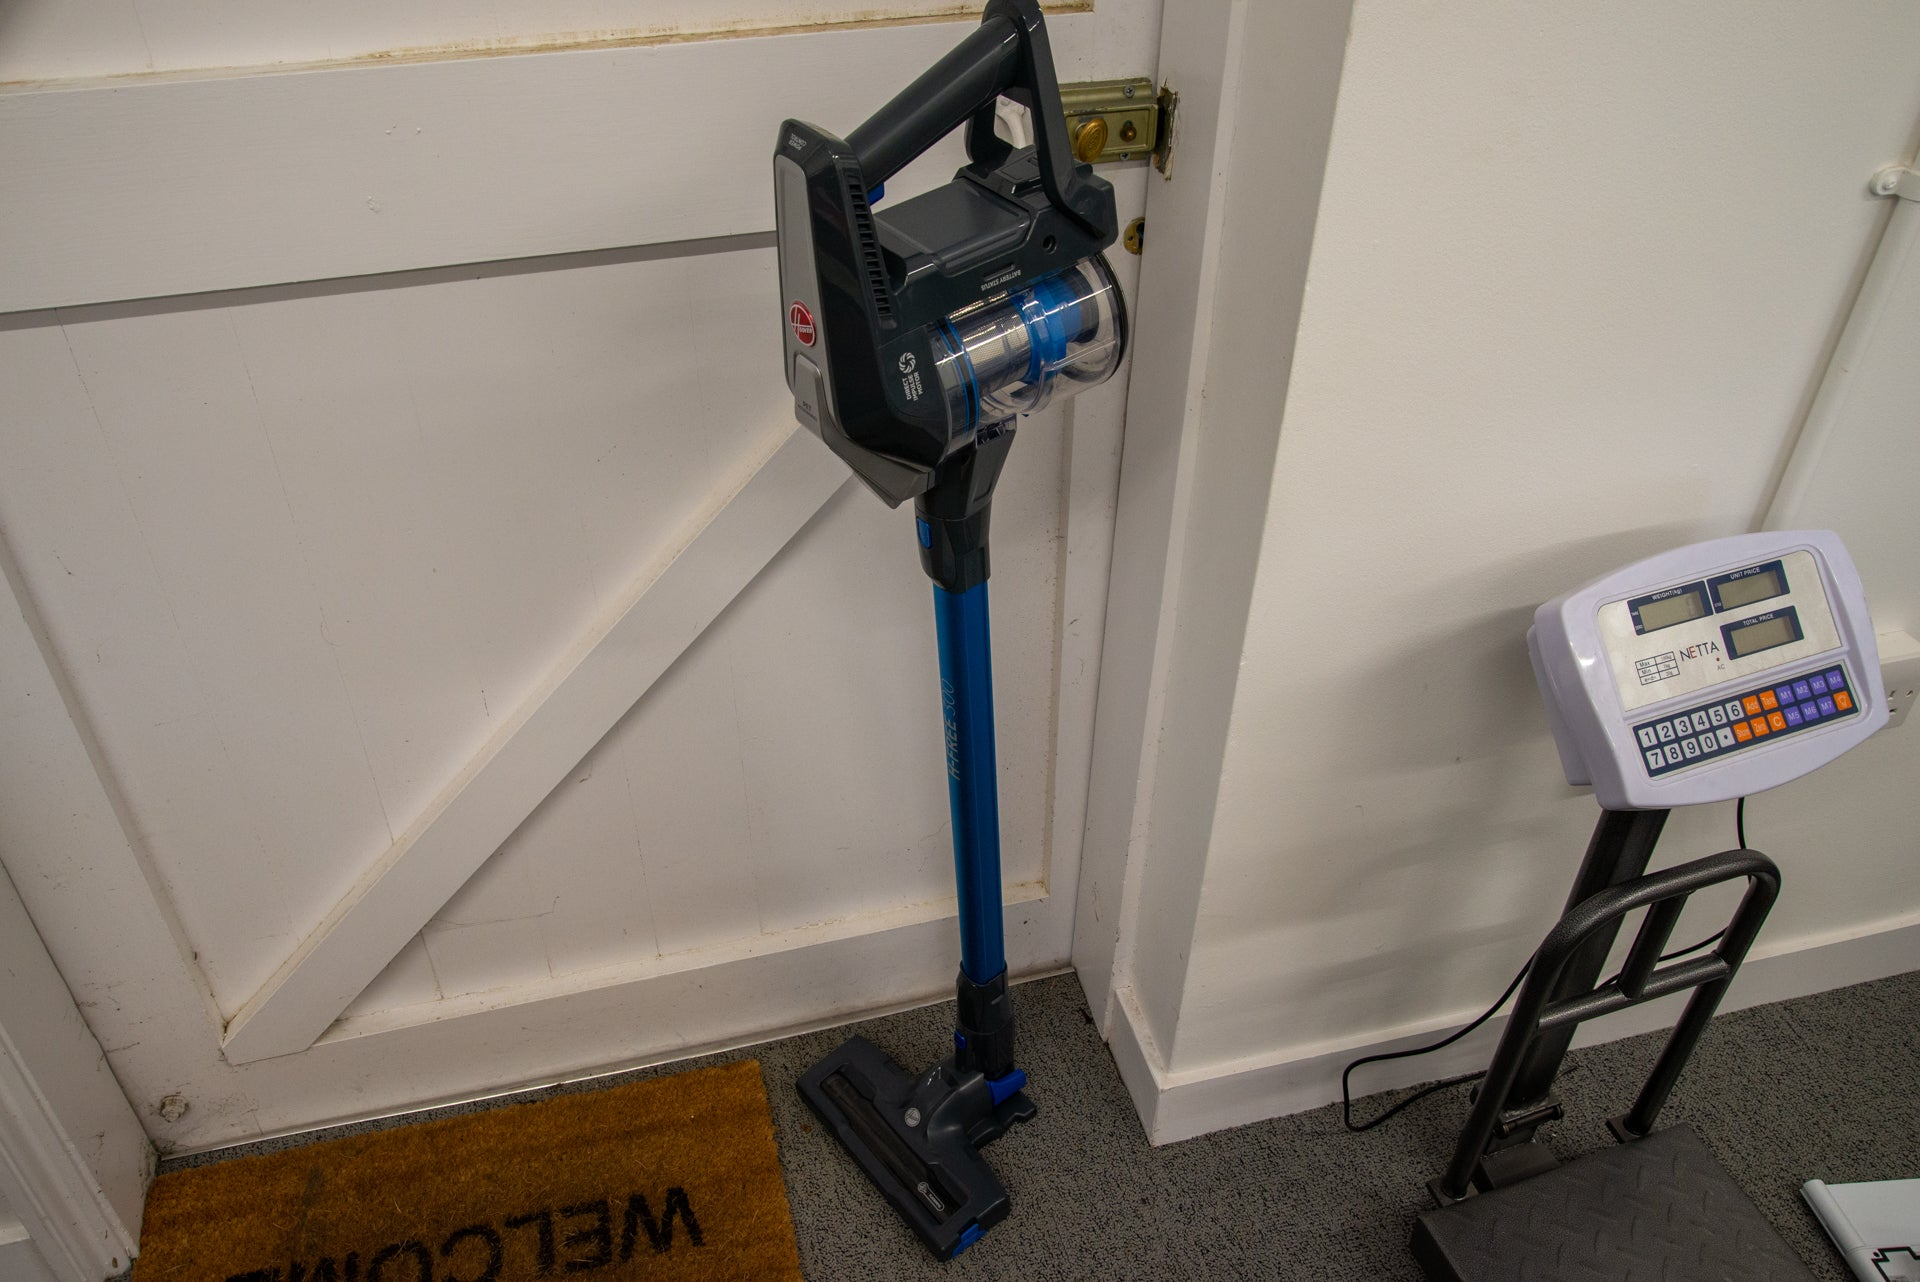 Hoover H-Free 300 standing up by itself